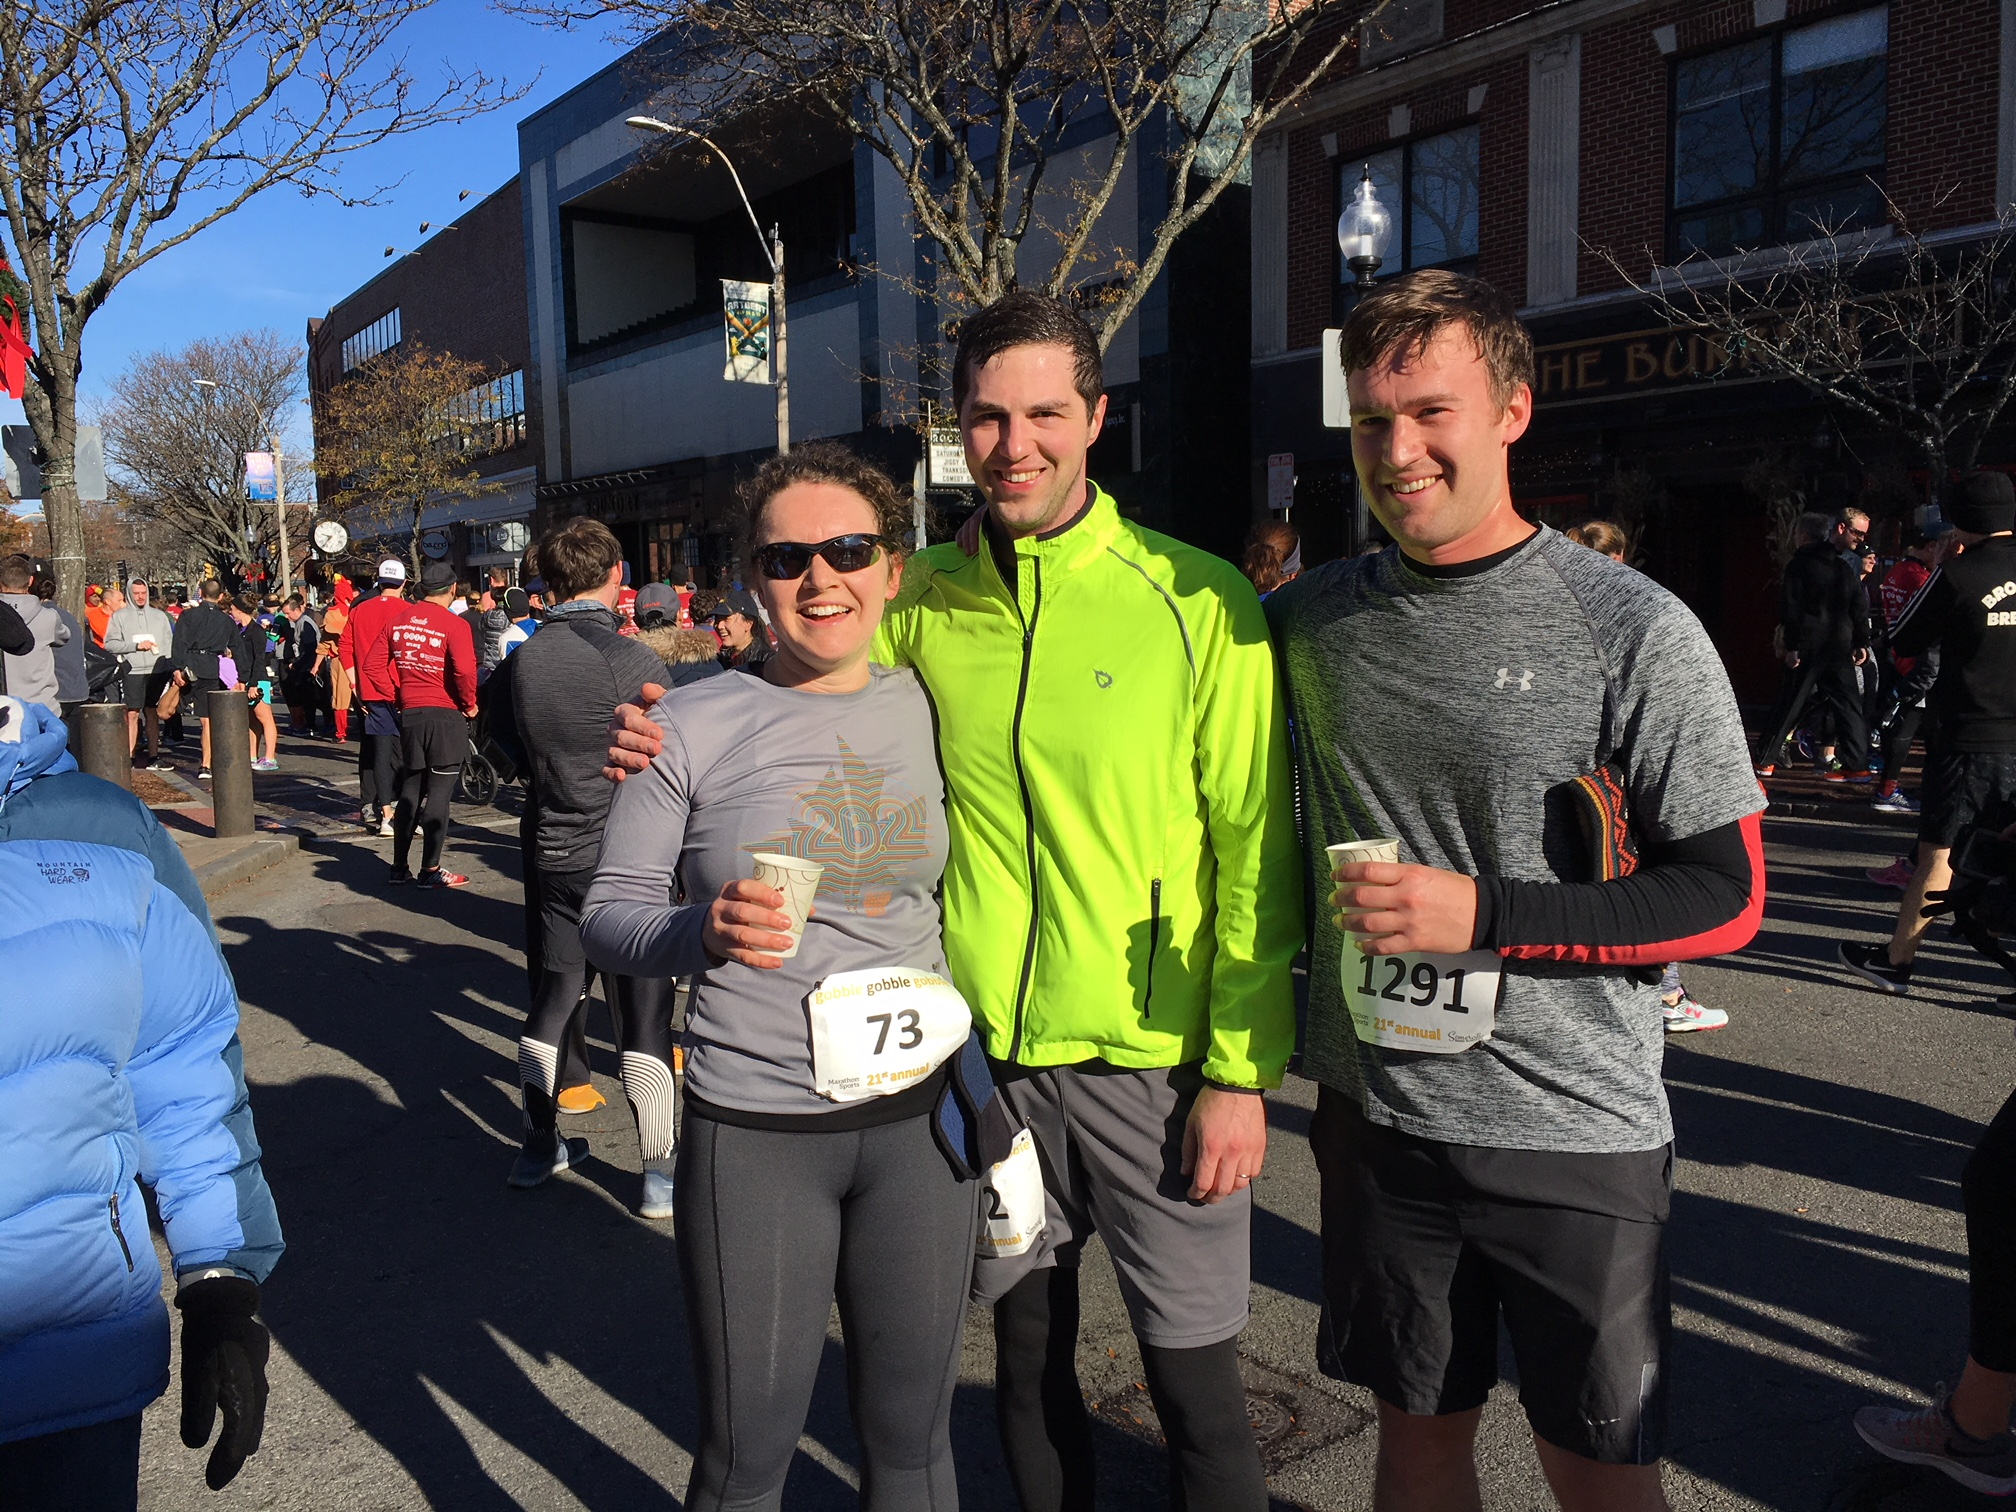 Me, my husband Tristan, and my brother Henry at the finish line of the 2017 Gobble, Gobble, Gobble Thanksgiving 4 mile race in Somerville. Henry ran with me and I set a new PR of 34:40, my first PR on this course in 10 years.